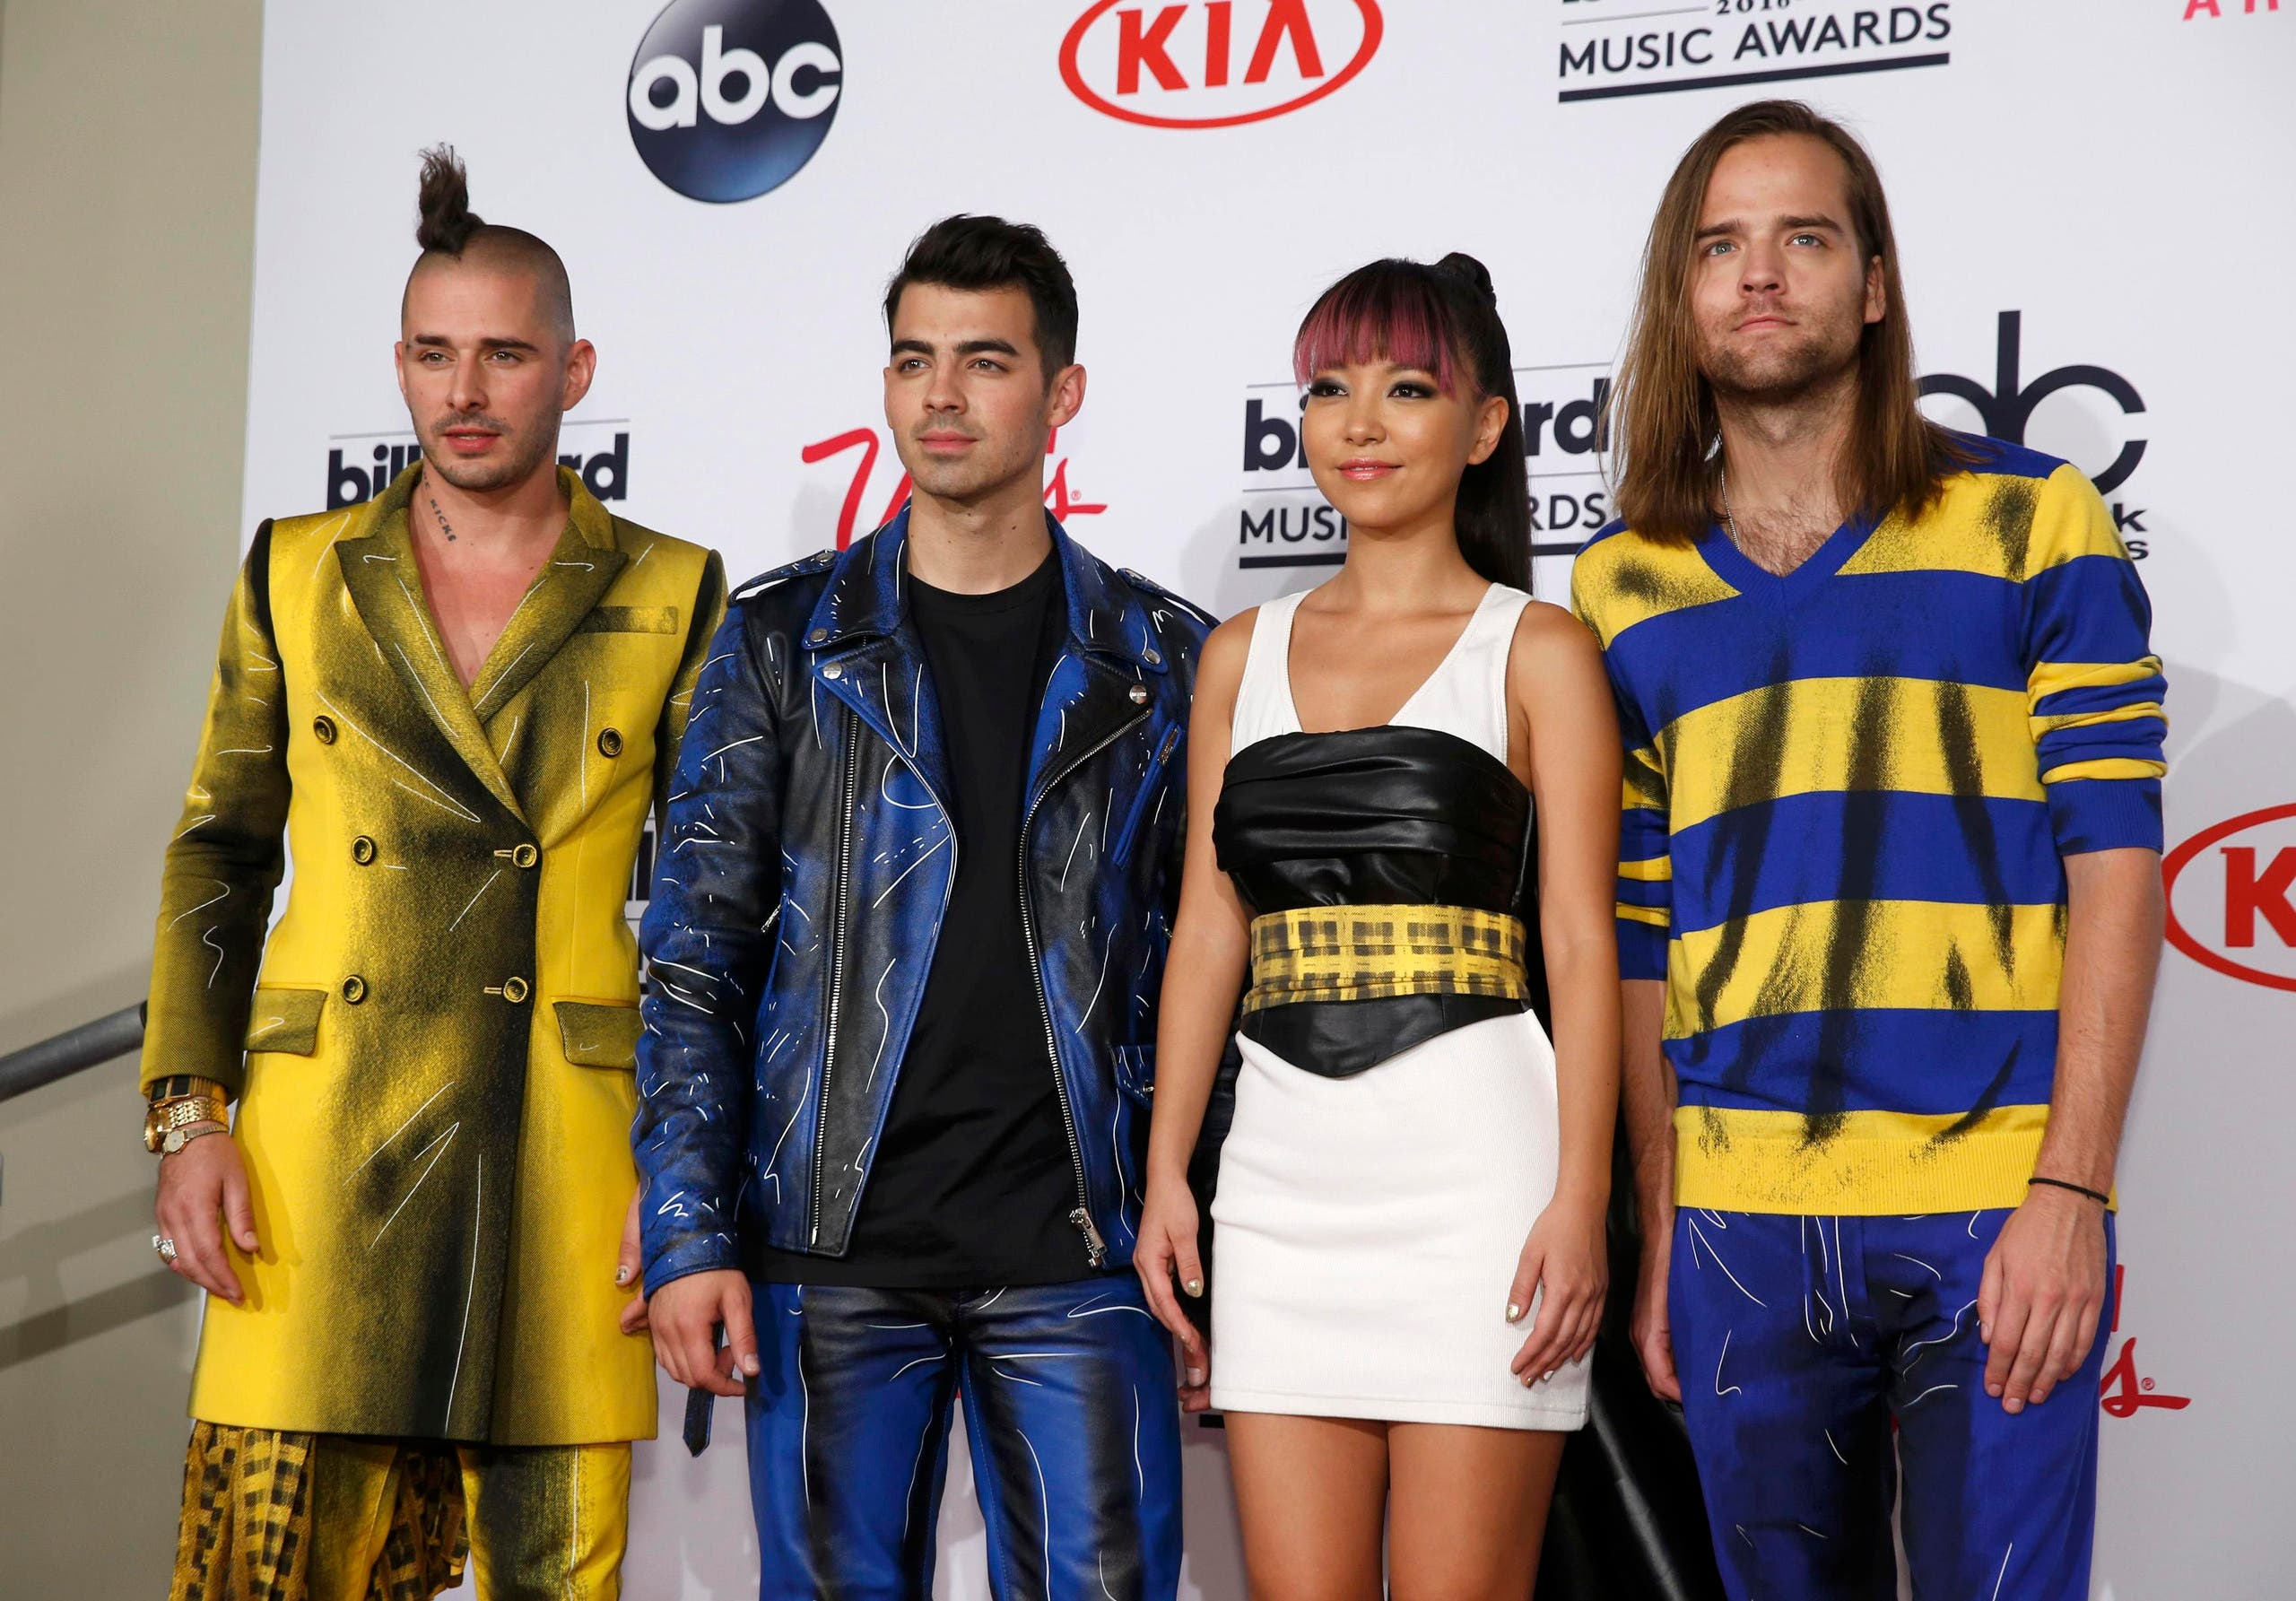 Rock band DNCE poses backstage at the 2016 Billboard Awards in Las Vegas, Nevada, US, May 22, 2016. (Reuters)